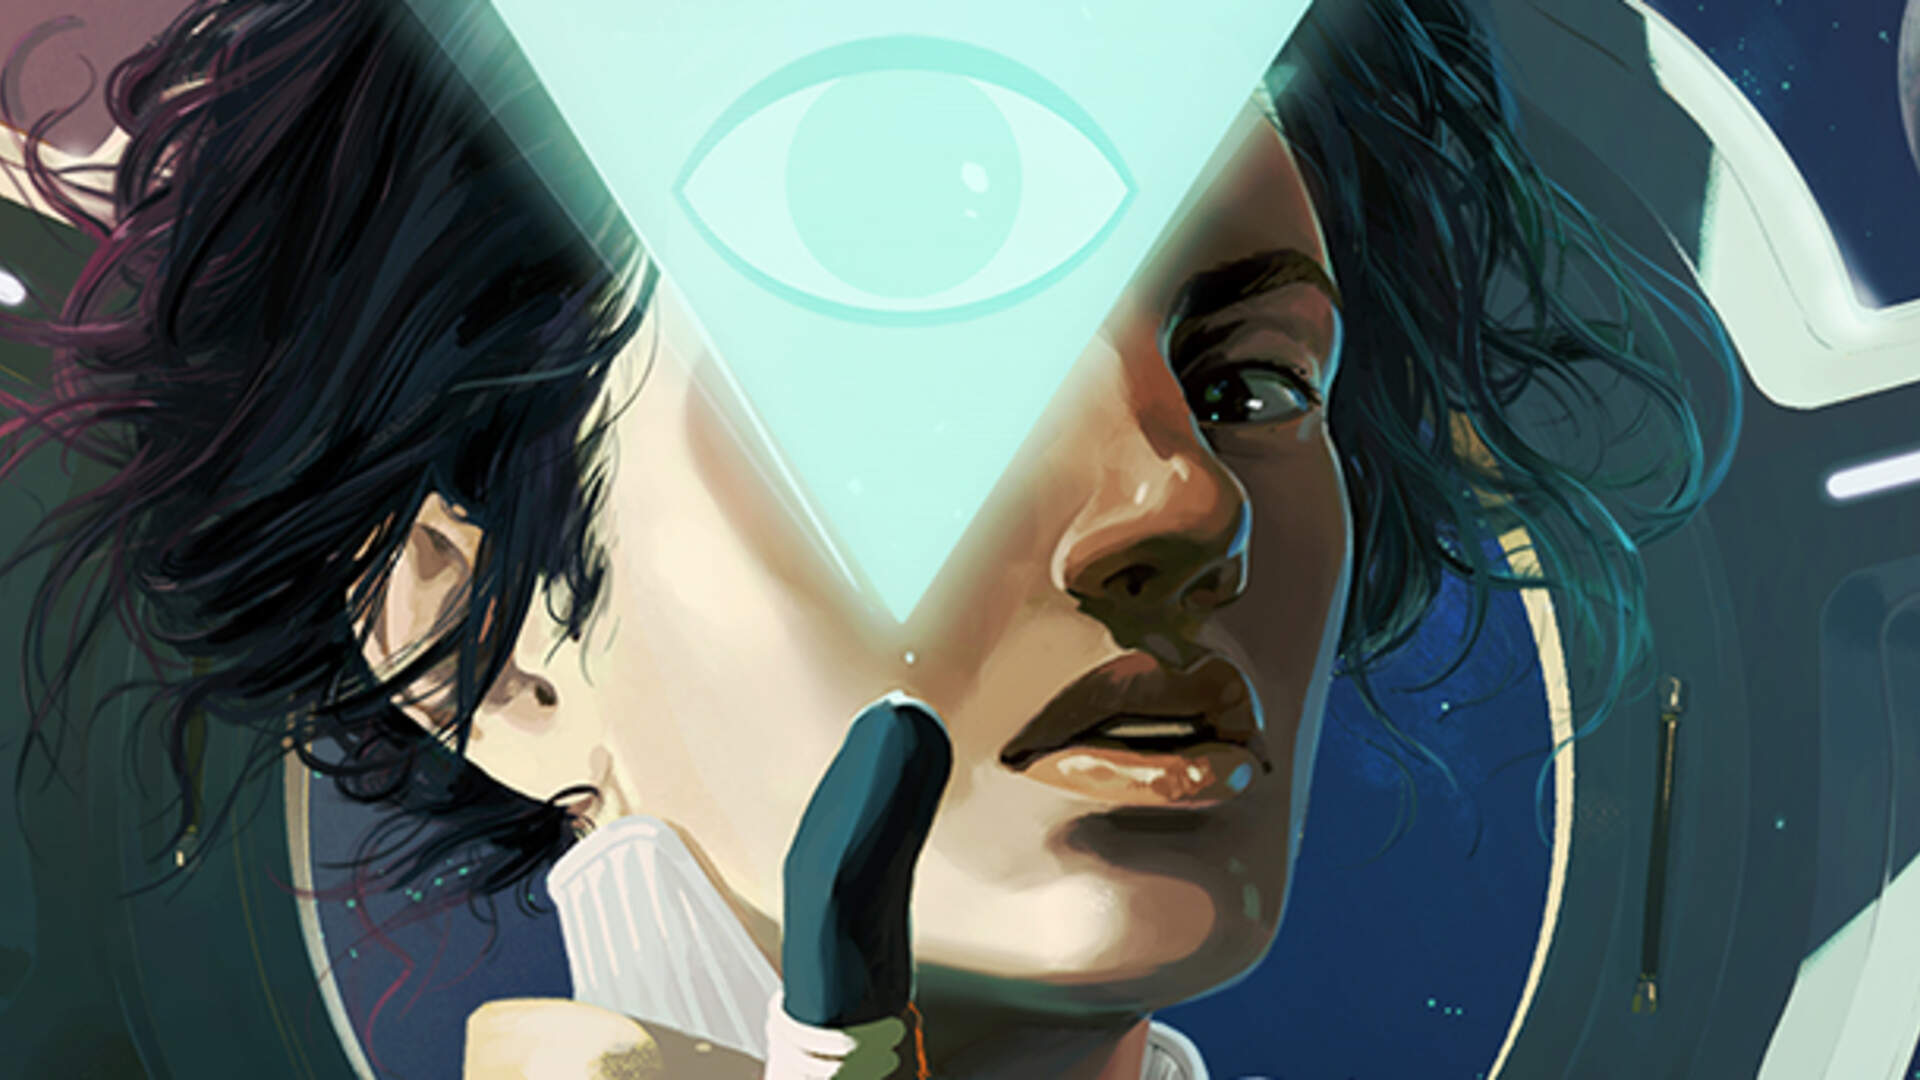 Tacoma Review: Spacecation, All I Ever Wanted